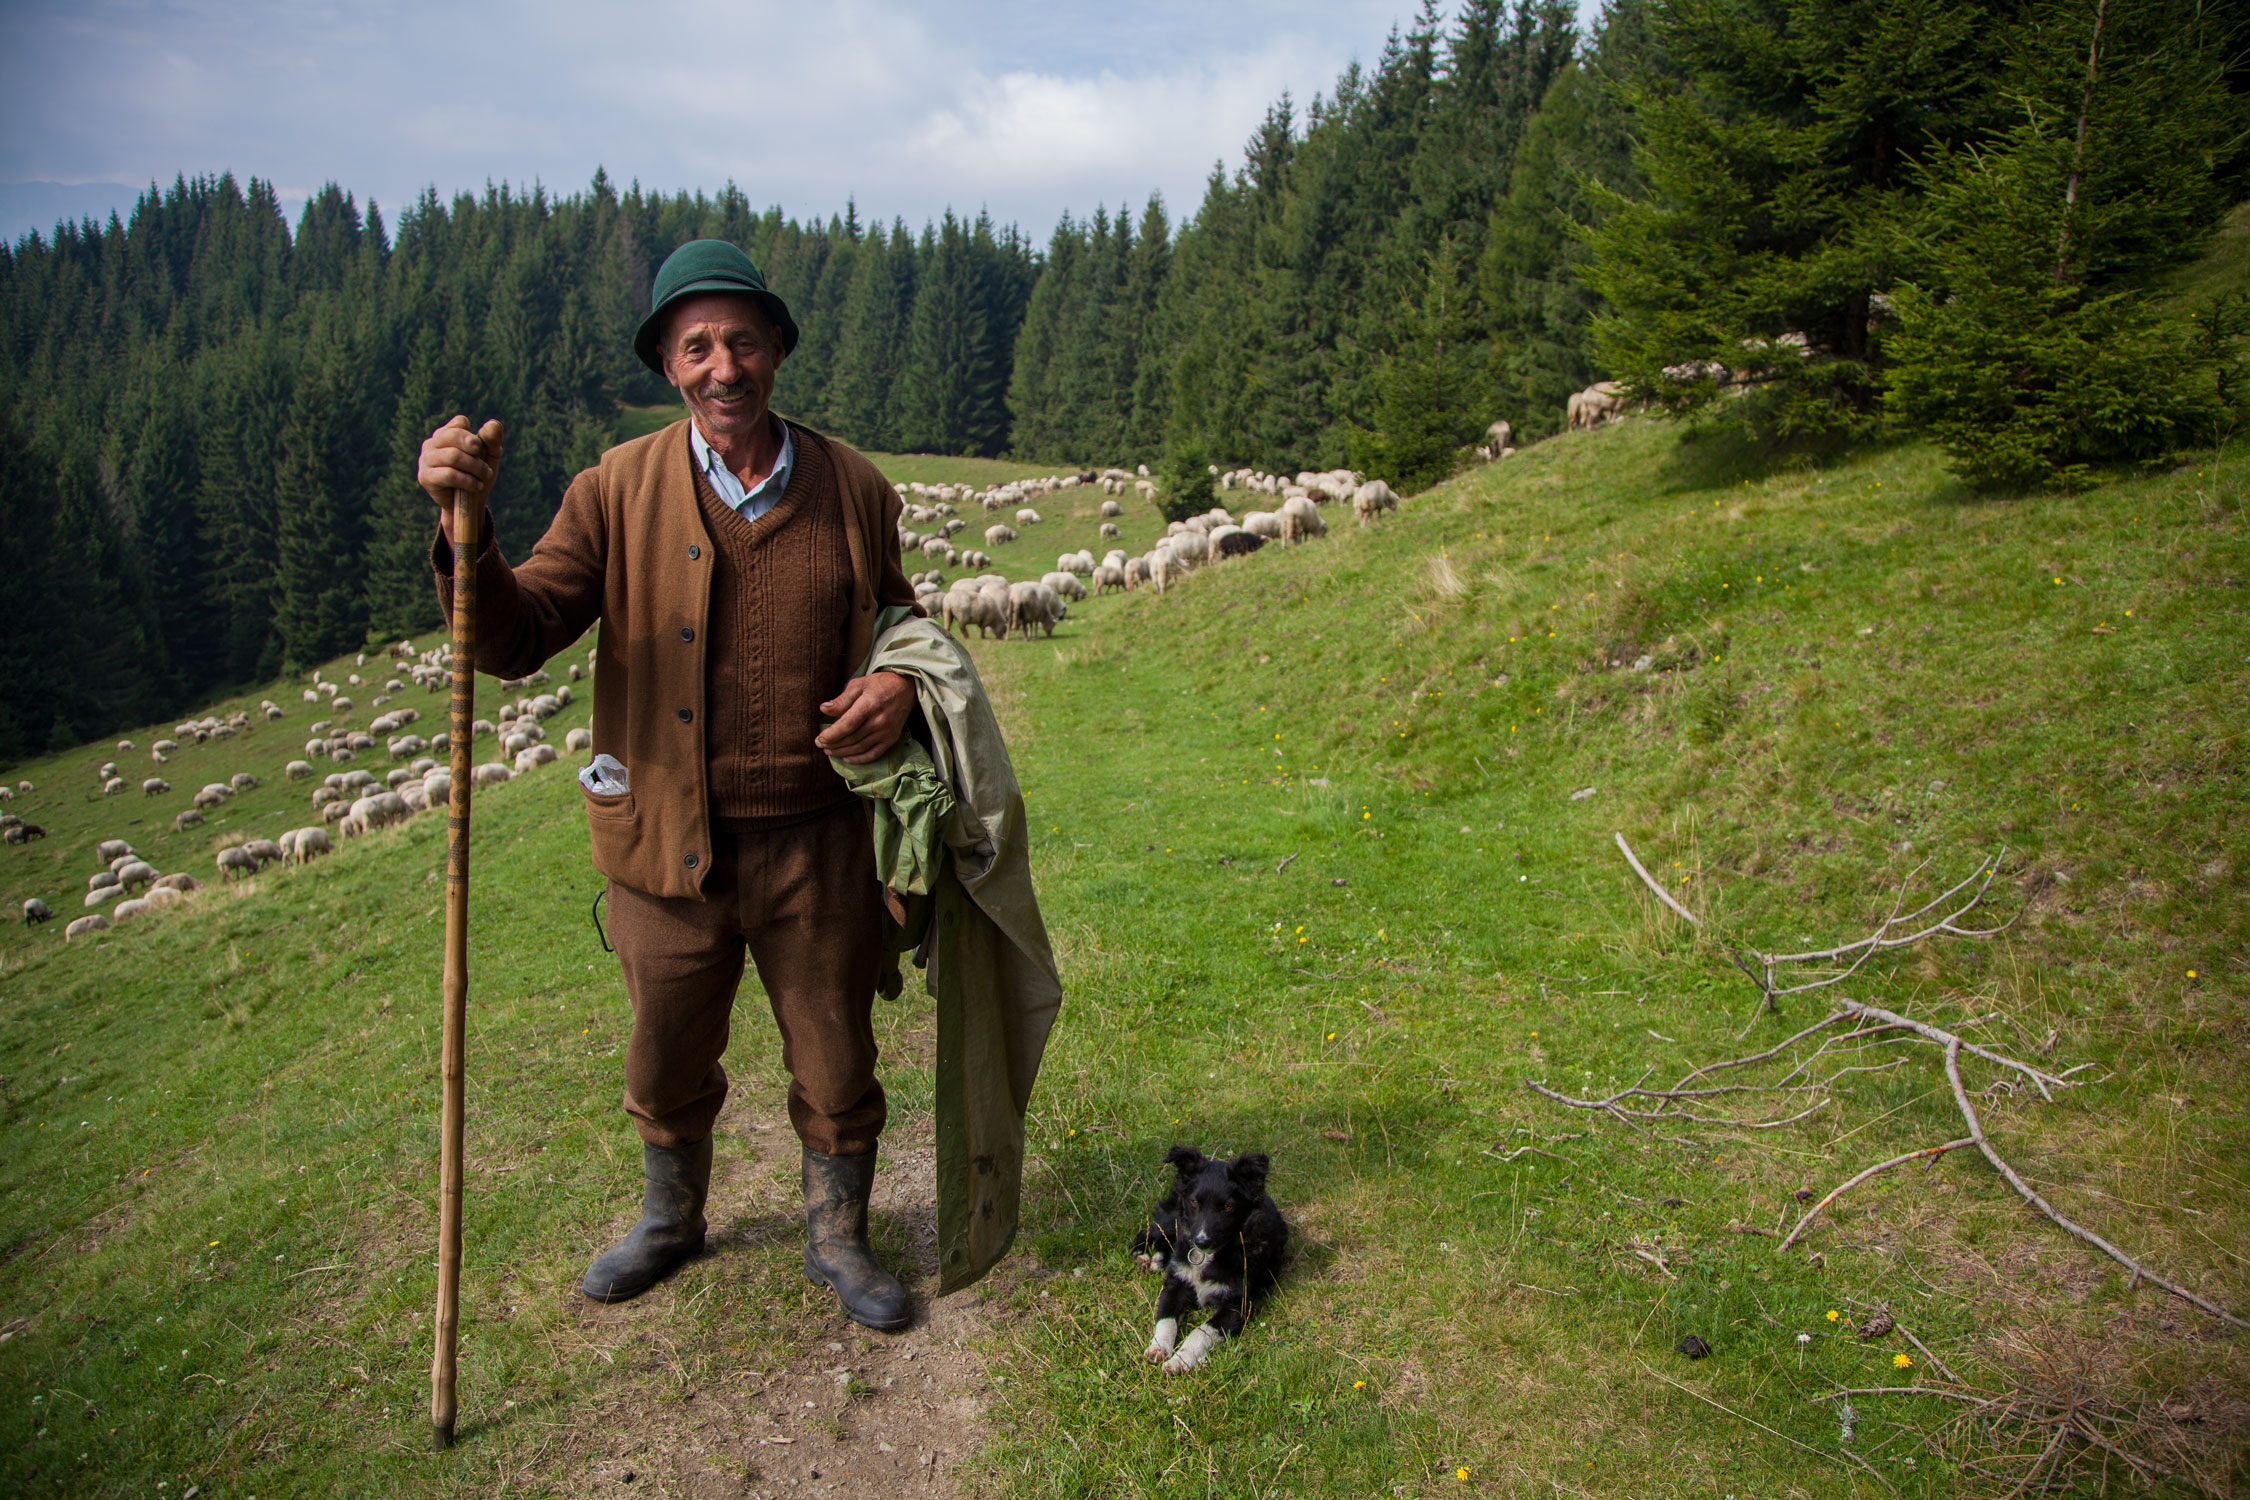 Romanian shepherd and his dog - photo by Cinty Ionescu and featured in this album on Flickr and shared under a CC BY 2.0 Creative Commons License